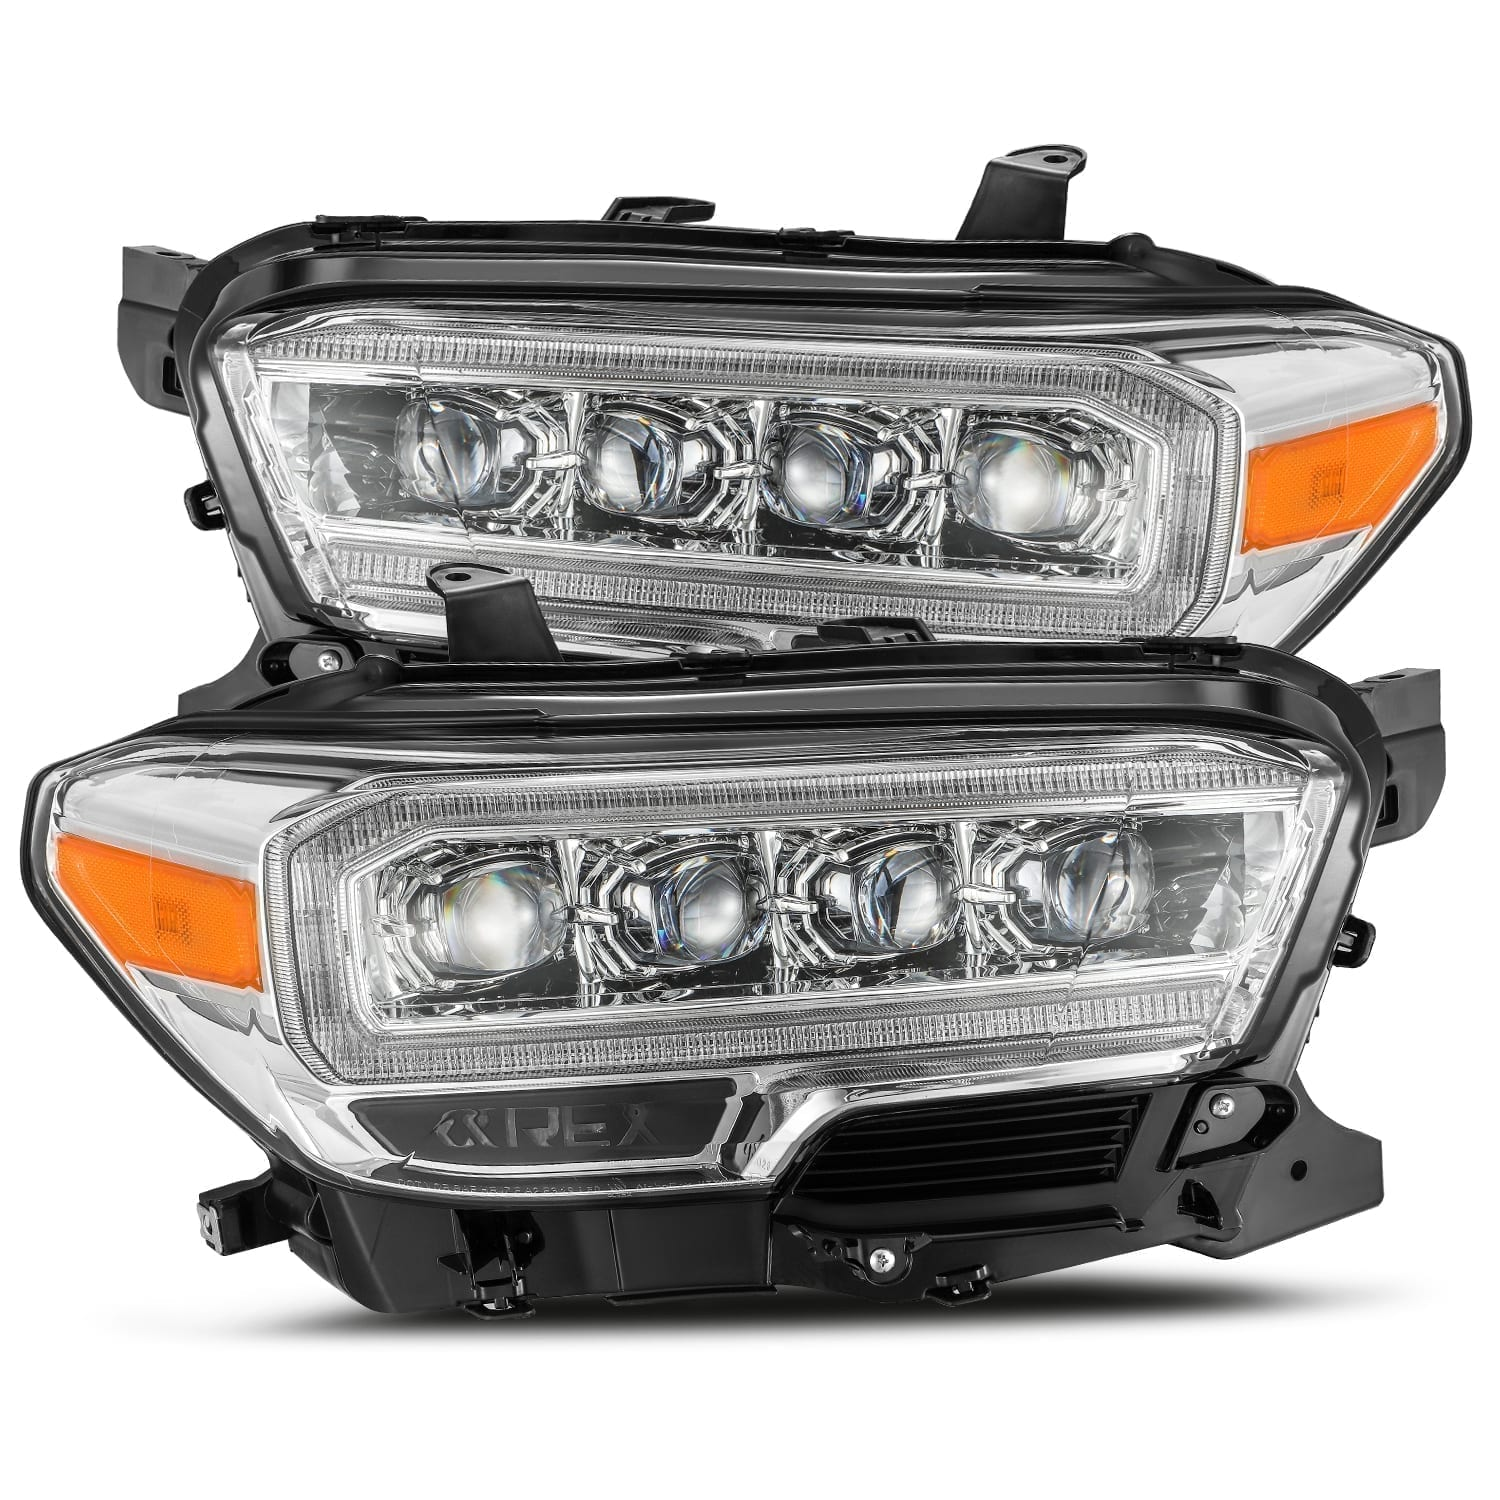 AlphaRex 16-20 Toyota Tacoma NOVA-Series LED Projector Headlights Chrome